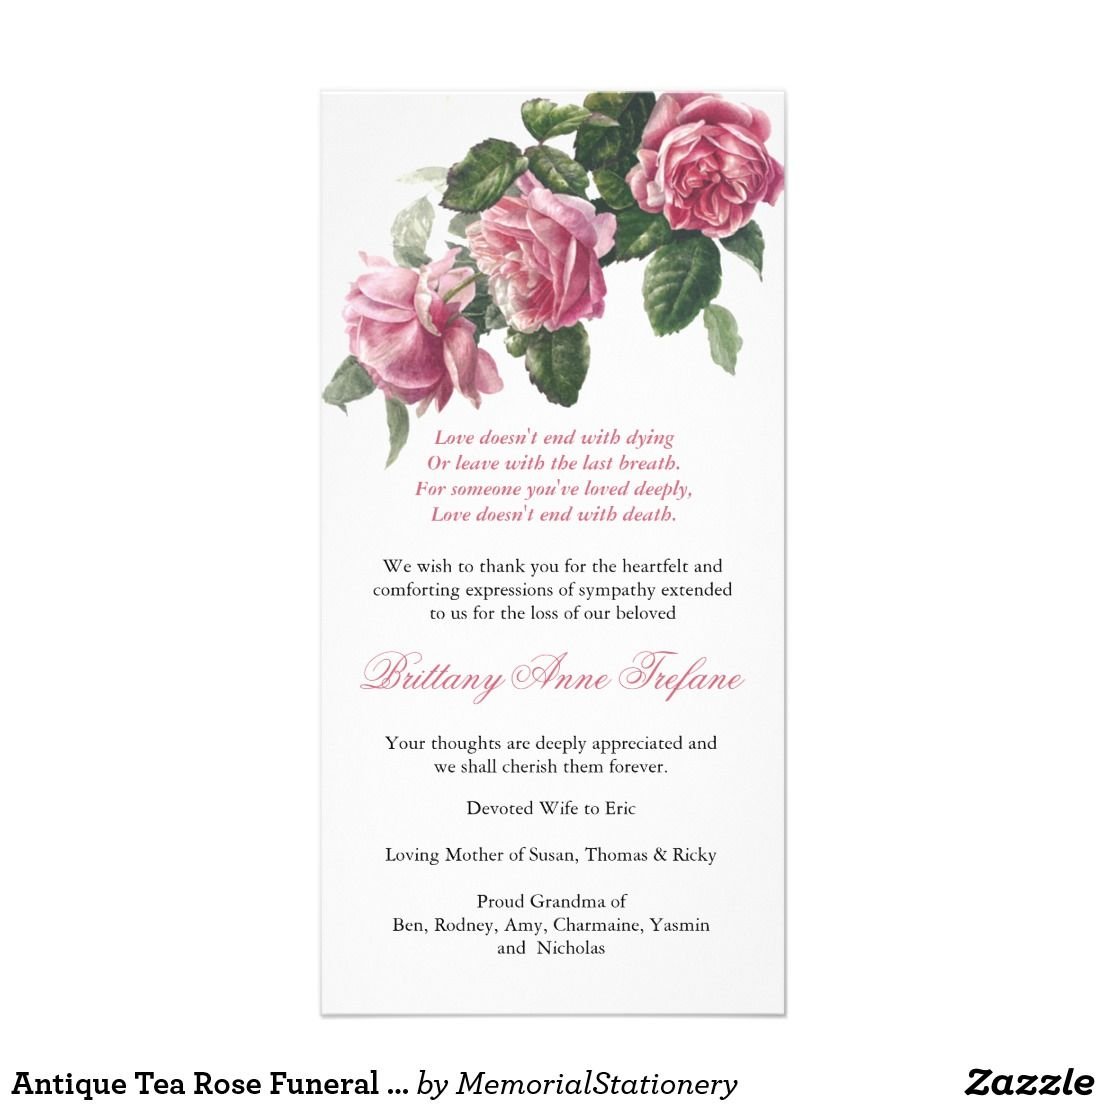 Antique Tea Rose Funeral Thank You Funeral Thank You Cards